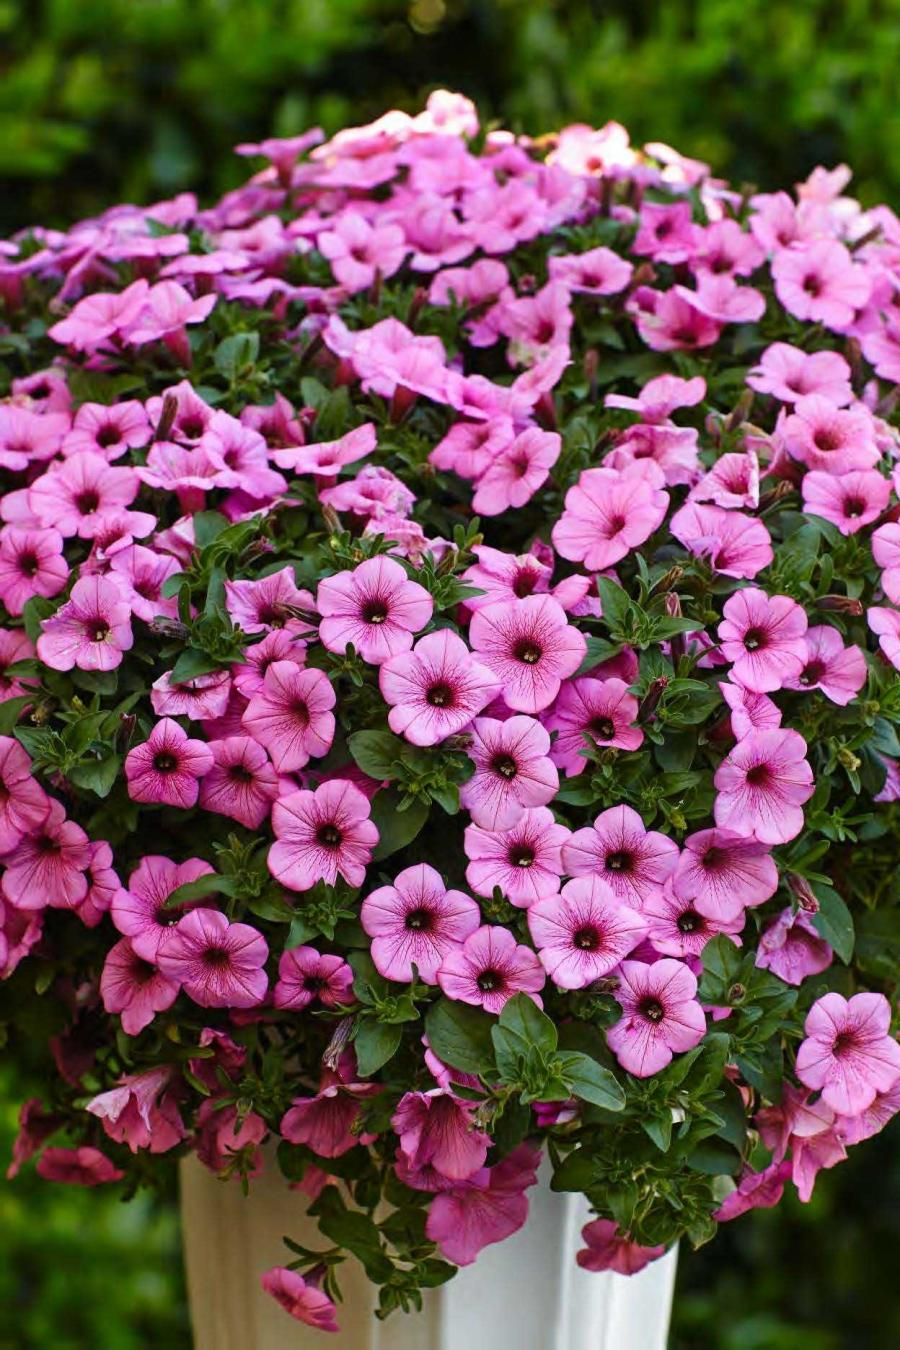 Photos of annual flowers annual flowers buck and sons landscape blog source view full sizepetunia supertunia flamingoproven winners izmirmasajfo